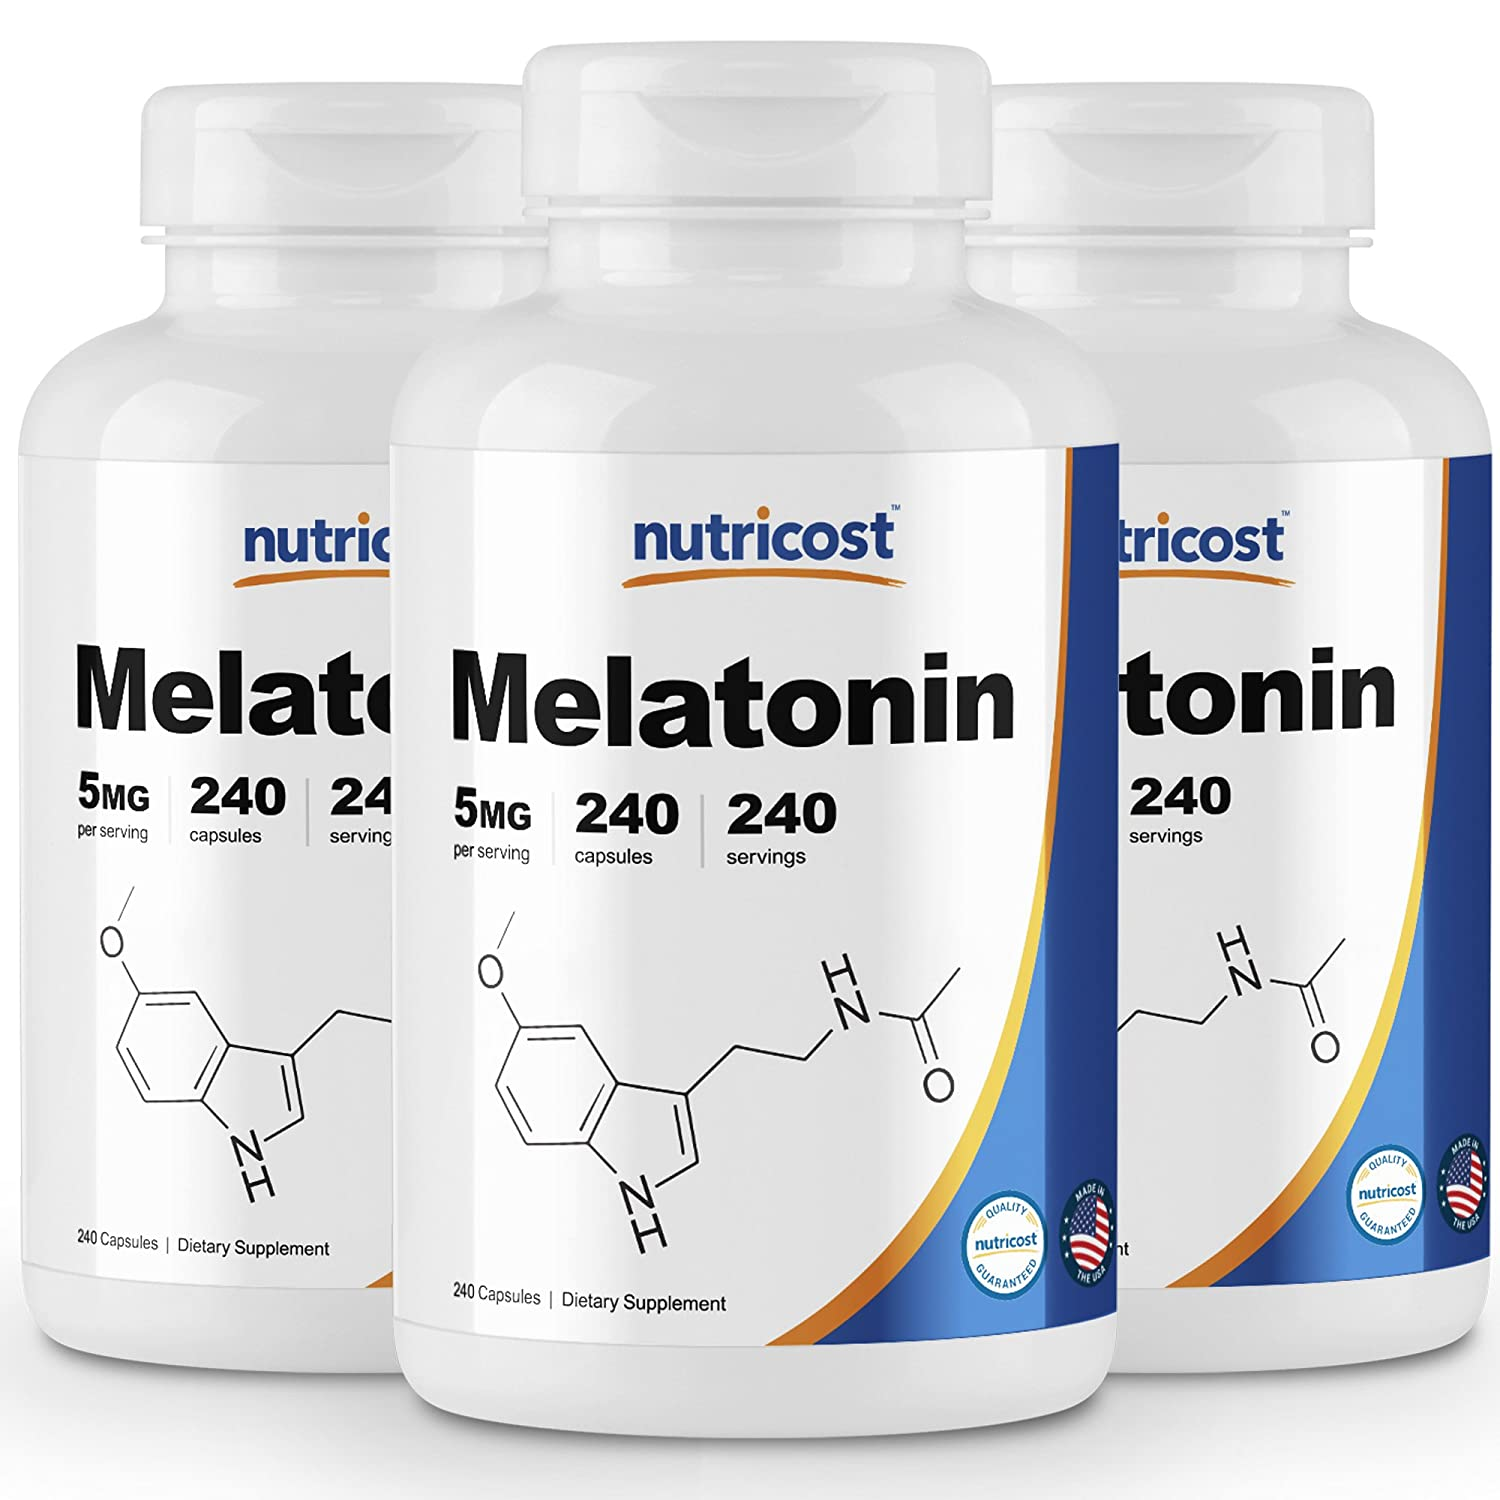 Amazon.com: Nutricost Melatonin 5mg, 240 Capsules - Regulate Sleeping Cycle, Non-GMO, Gluten Free, Made in the USA: Health & Personal Care